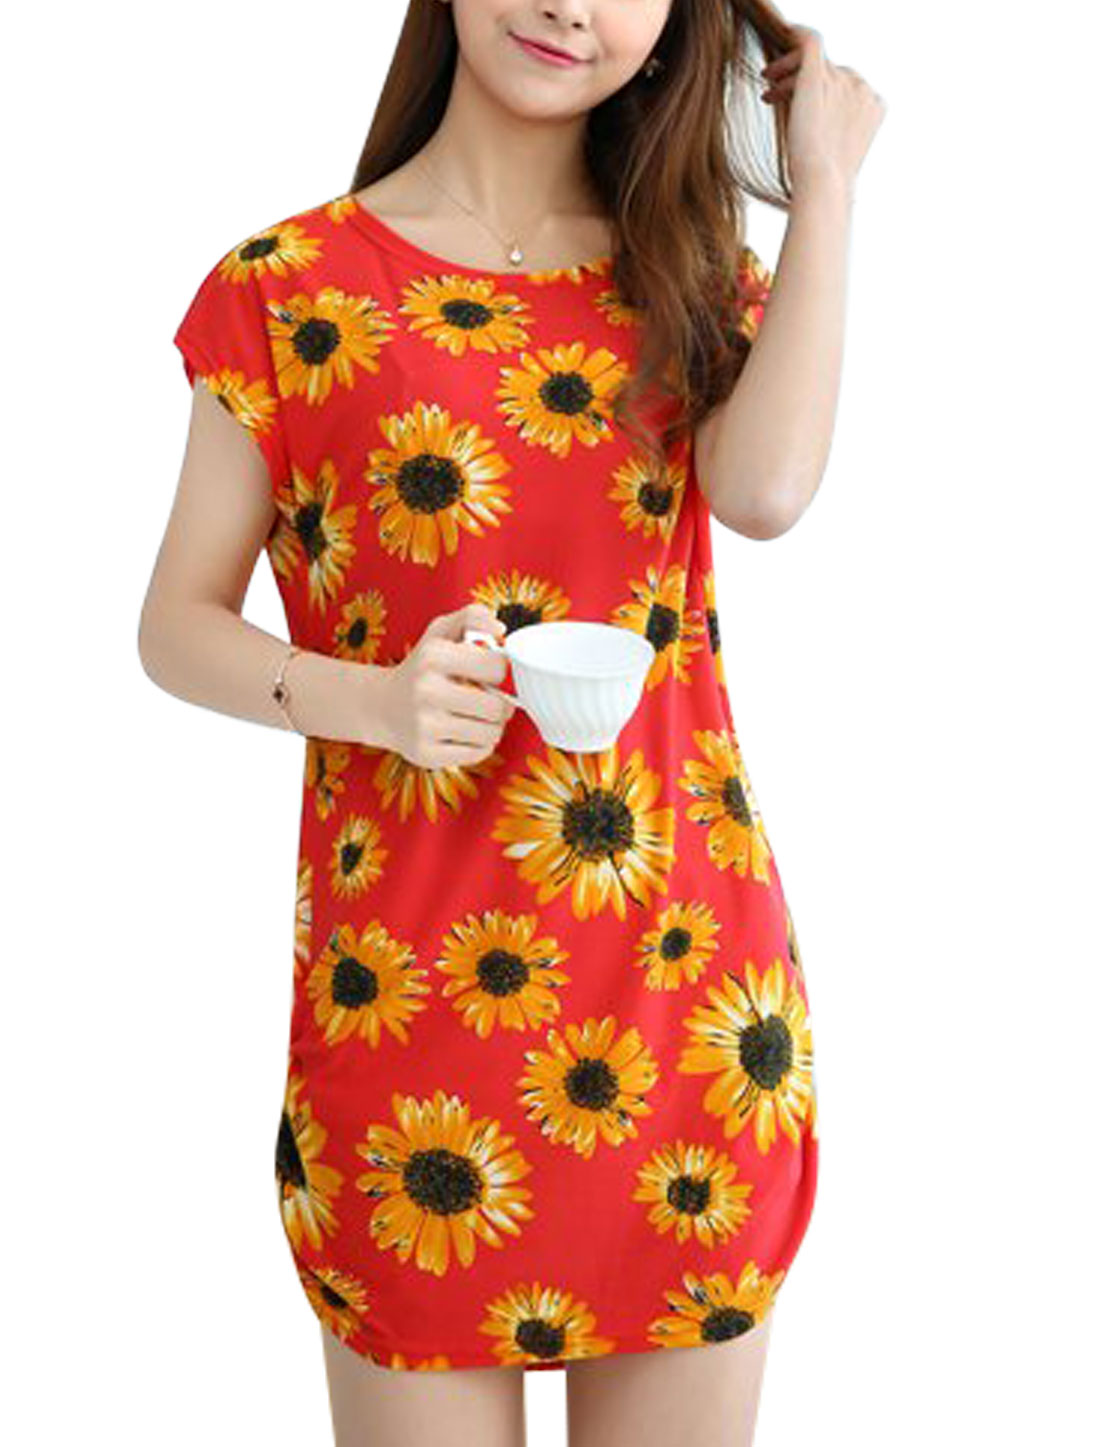 Ladies Round Neck Dolman Sleeves Flower Prints Casual Tunic Dress Red S